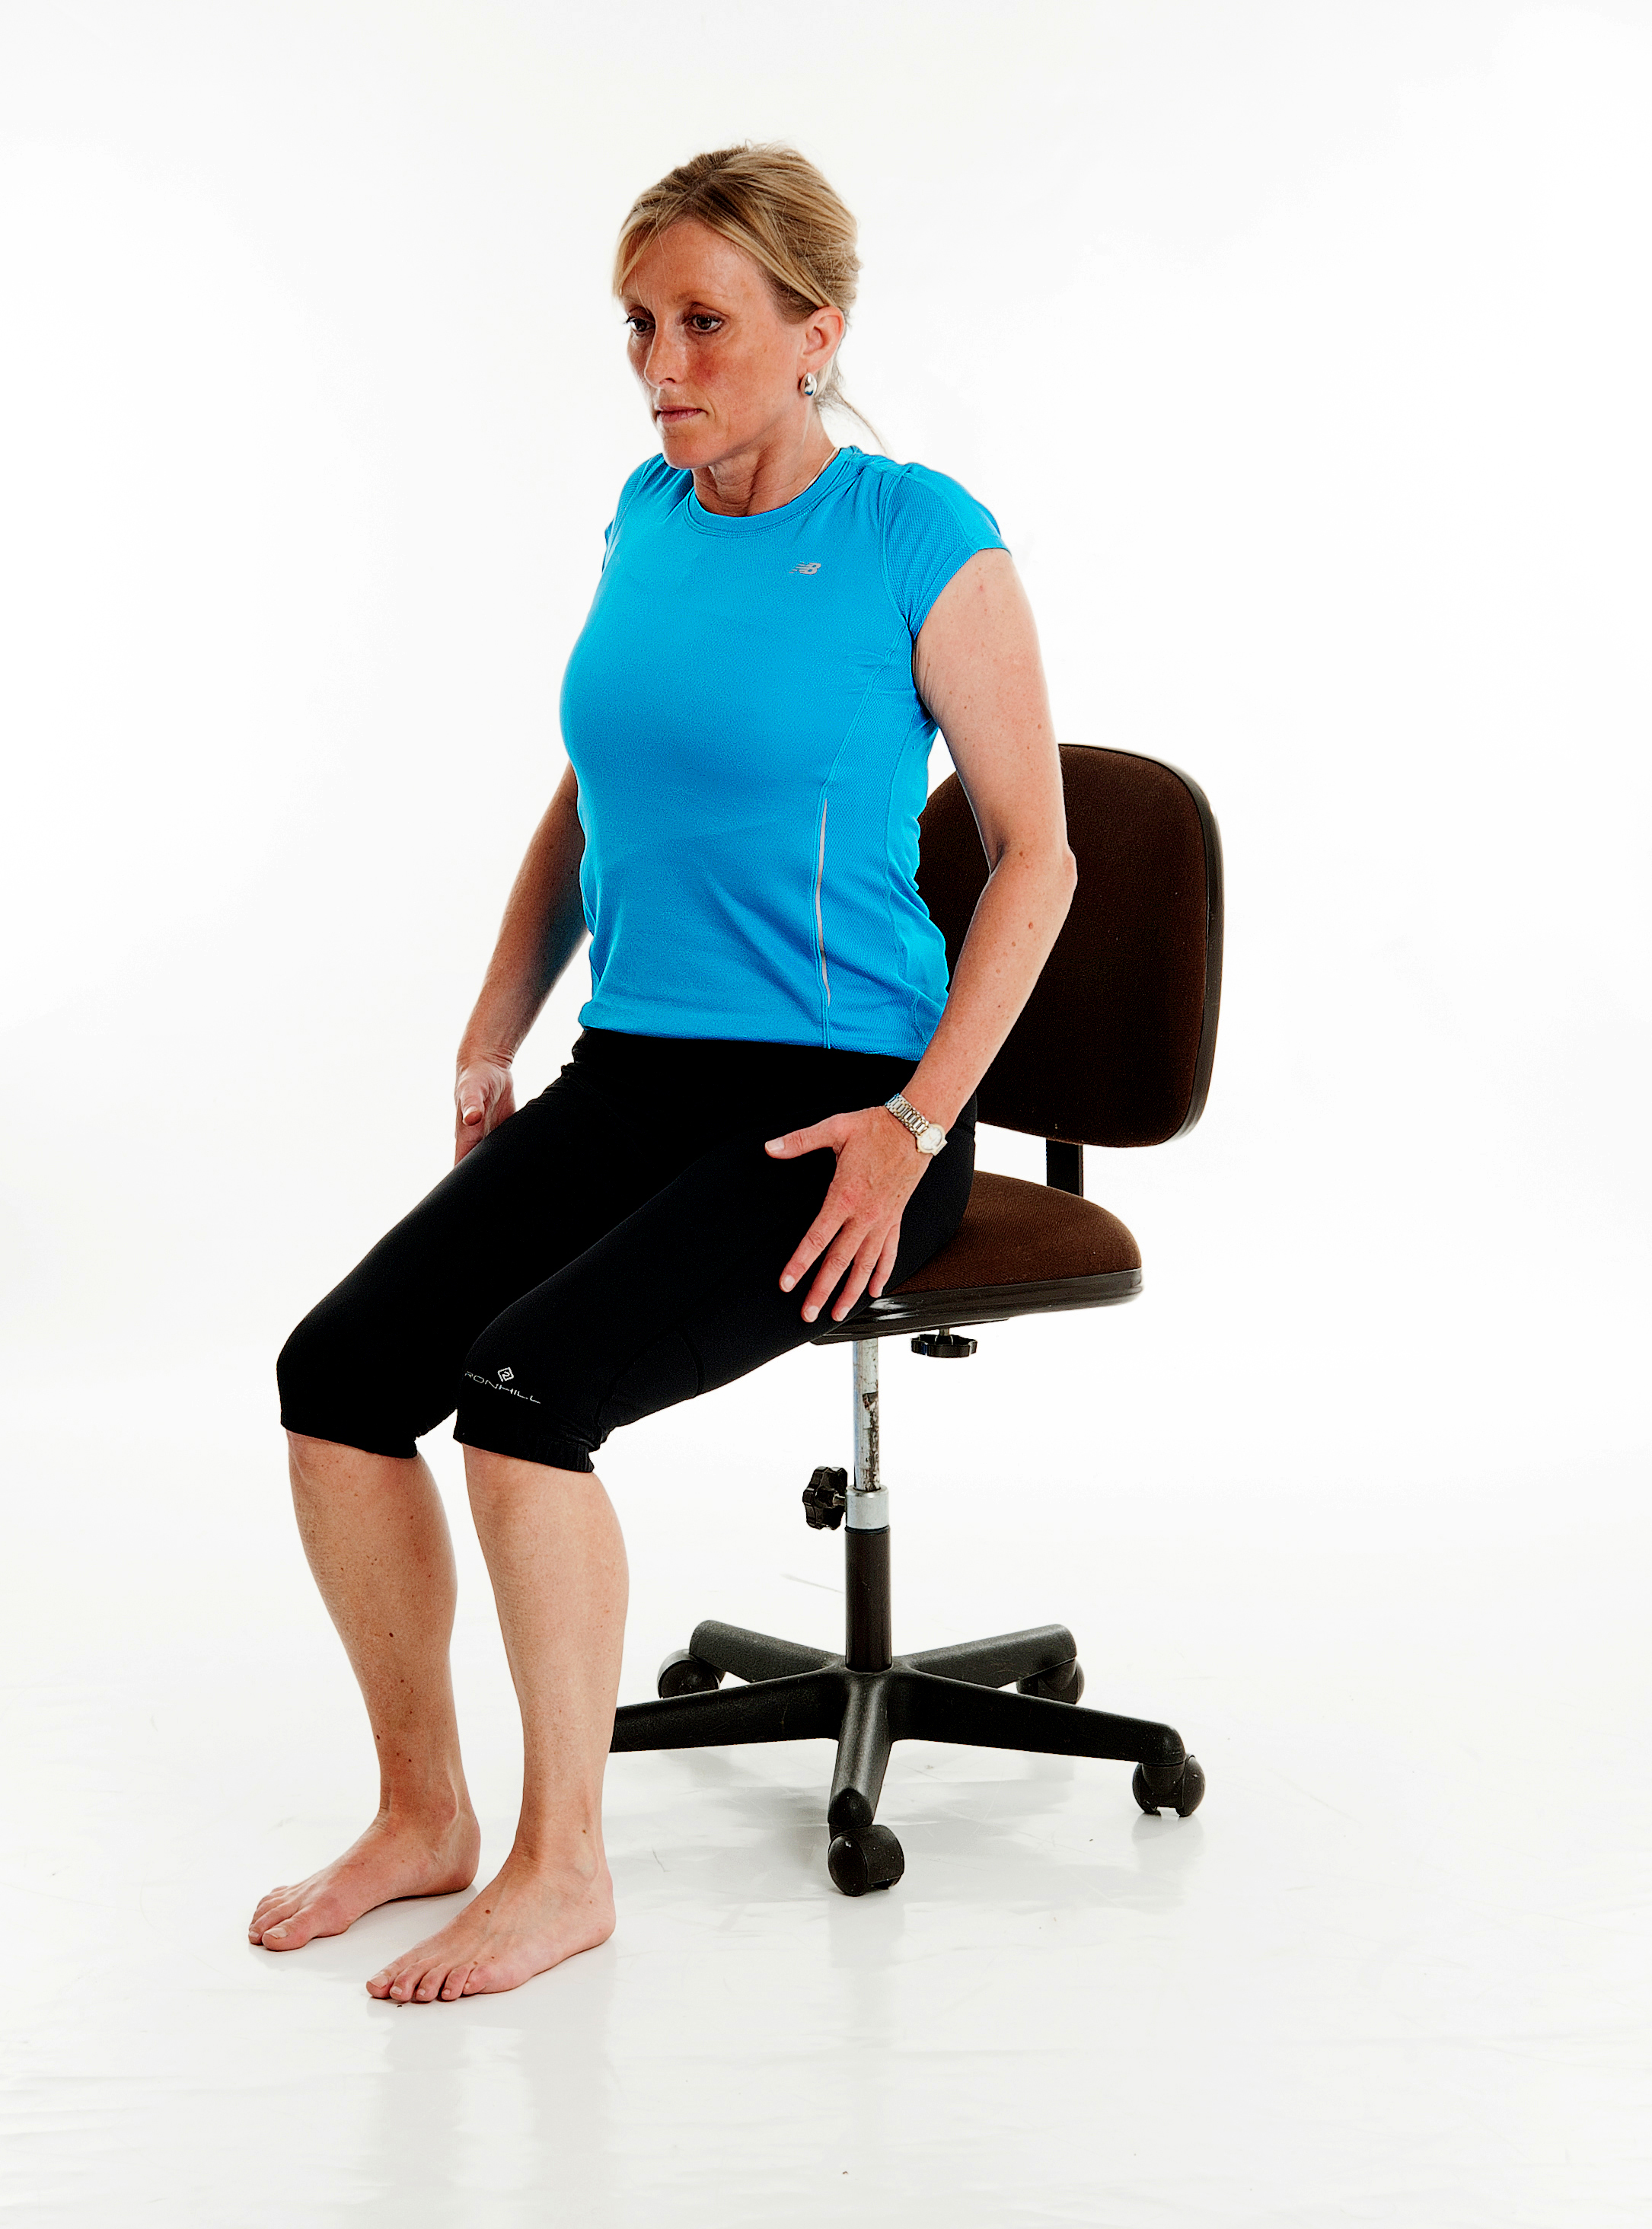 Back Care at the Office Healthwise Leiza Alpass MSc DC  : studio session 6050071shoulderroll <strong>Antique</strong> Office Chair from poise-health.co.uk size 2170 x 2928 jpeg 2345kB